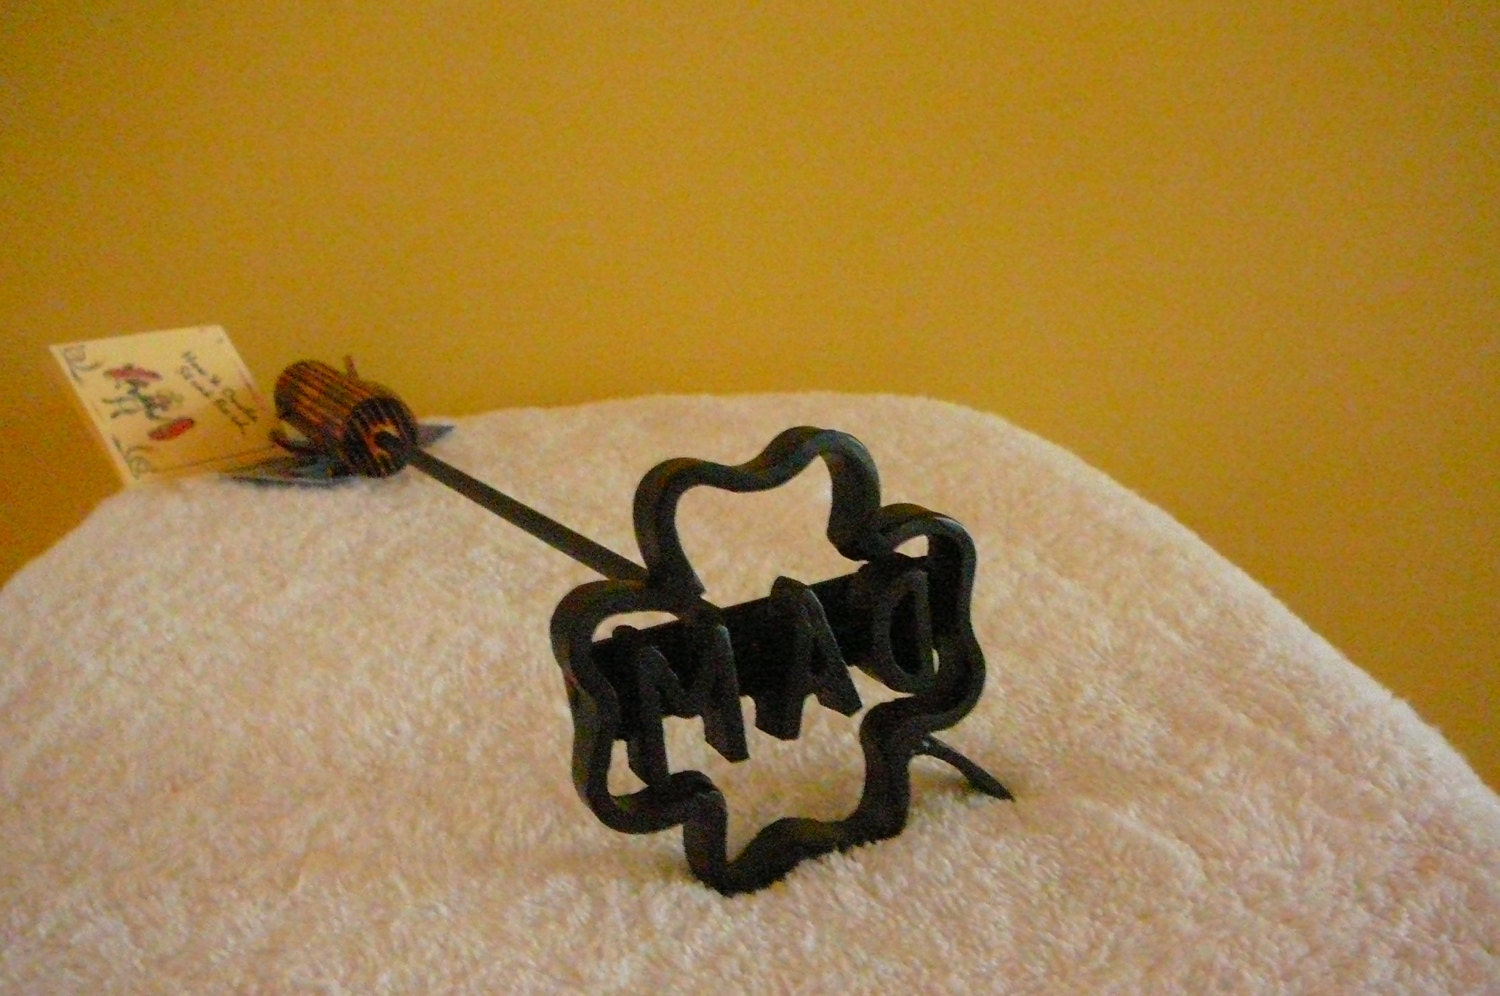 The Lucky Four Leaf Clover Steak Branding Iron With 1 Letteror